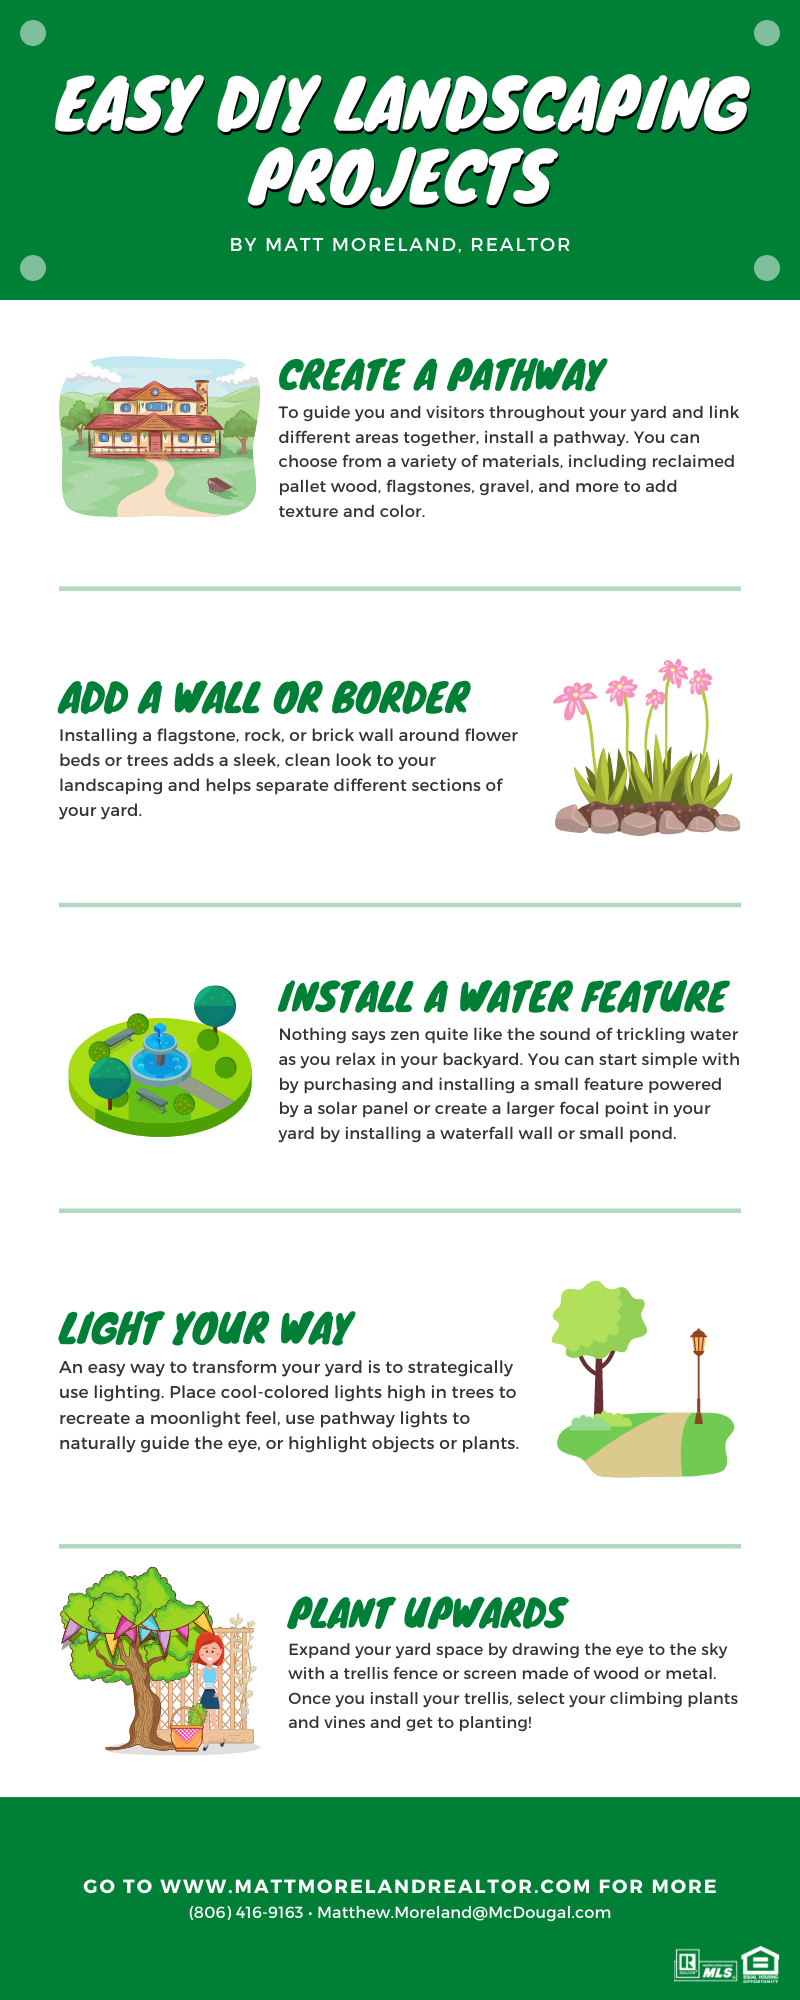 Infographic - Easy DIY Landscaping Projects by Matt Moreland, Realtor